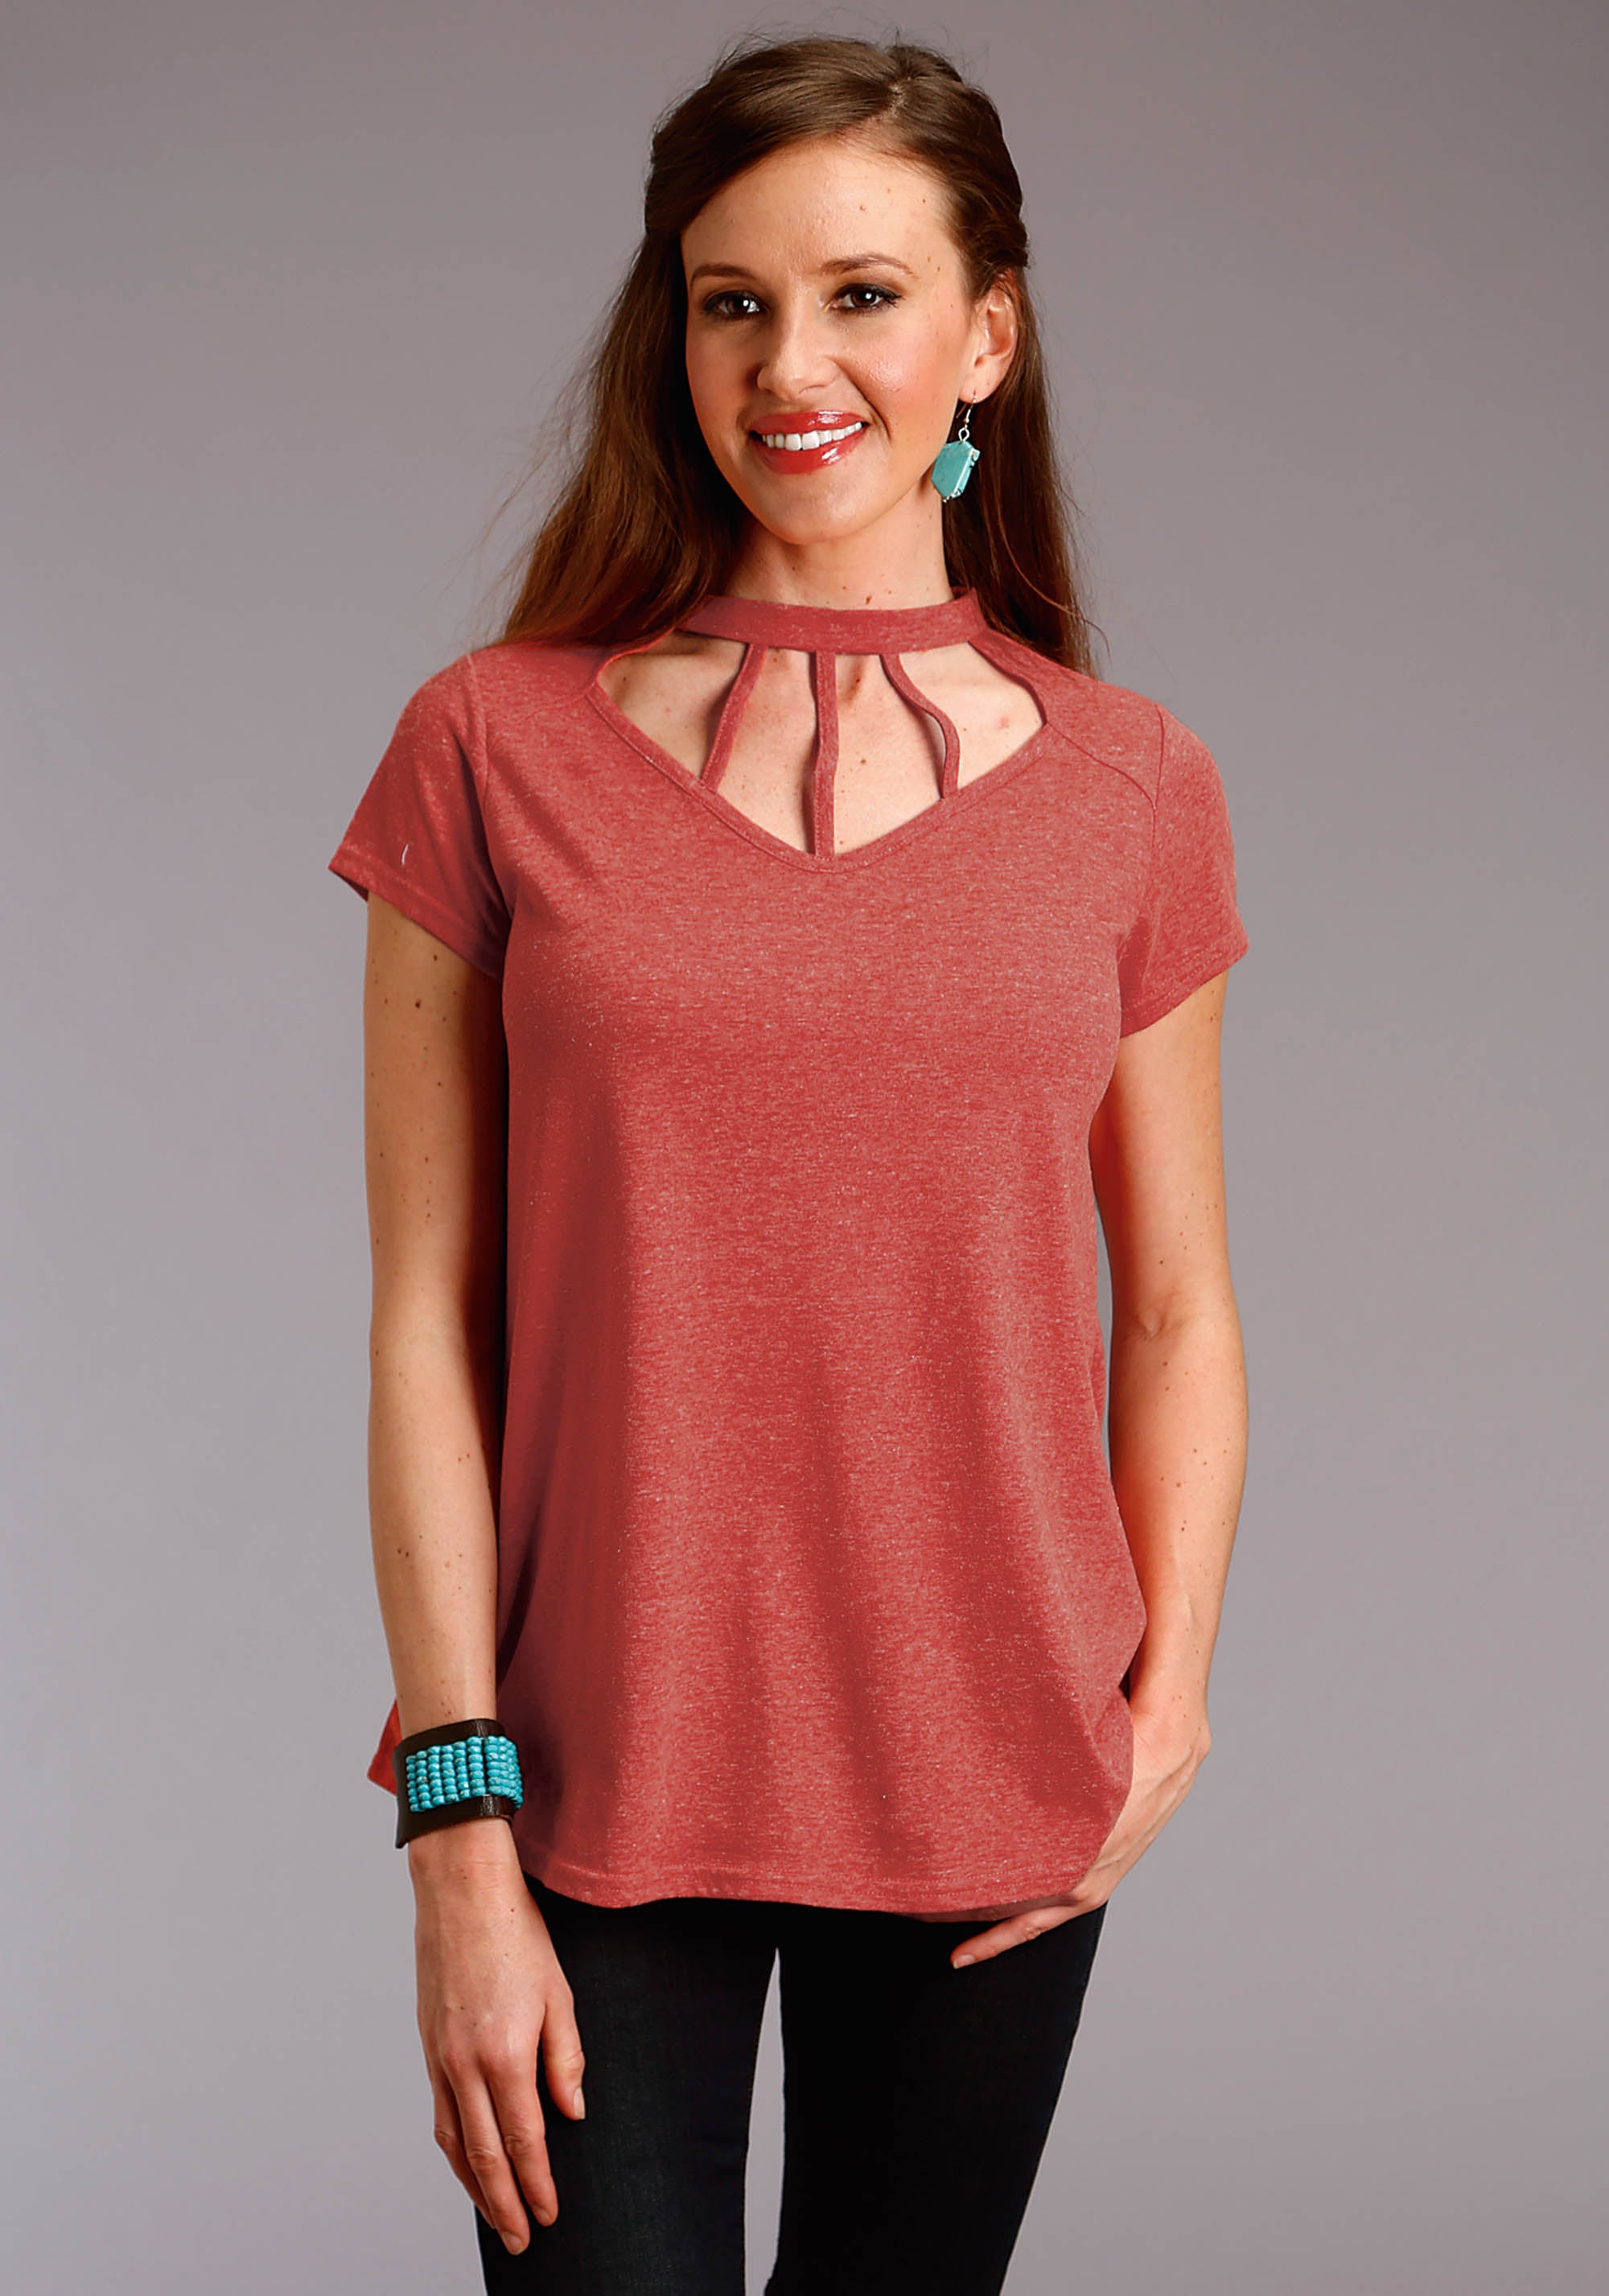 ROPER WOMENS RED 2596 HEATHER JERSEY MOCK-NECK TOP STUDIO WEST COLLECTION- TAOS SUNRISE SHORT SLEEVE